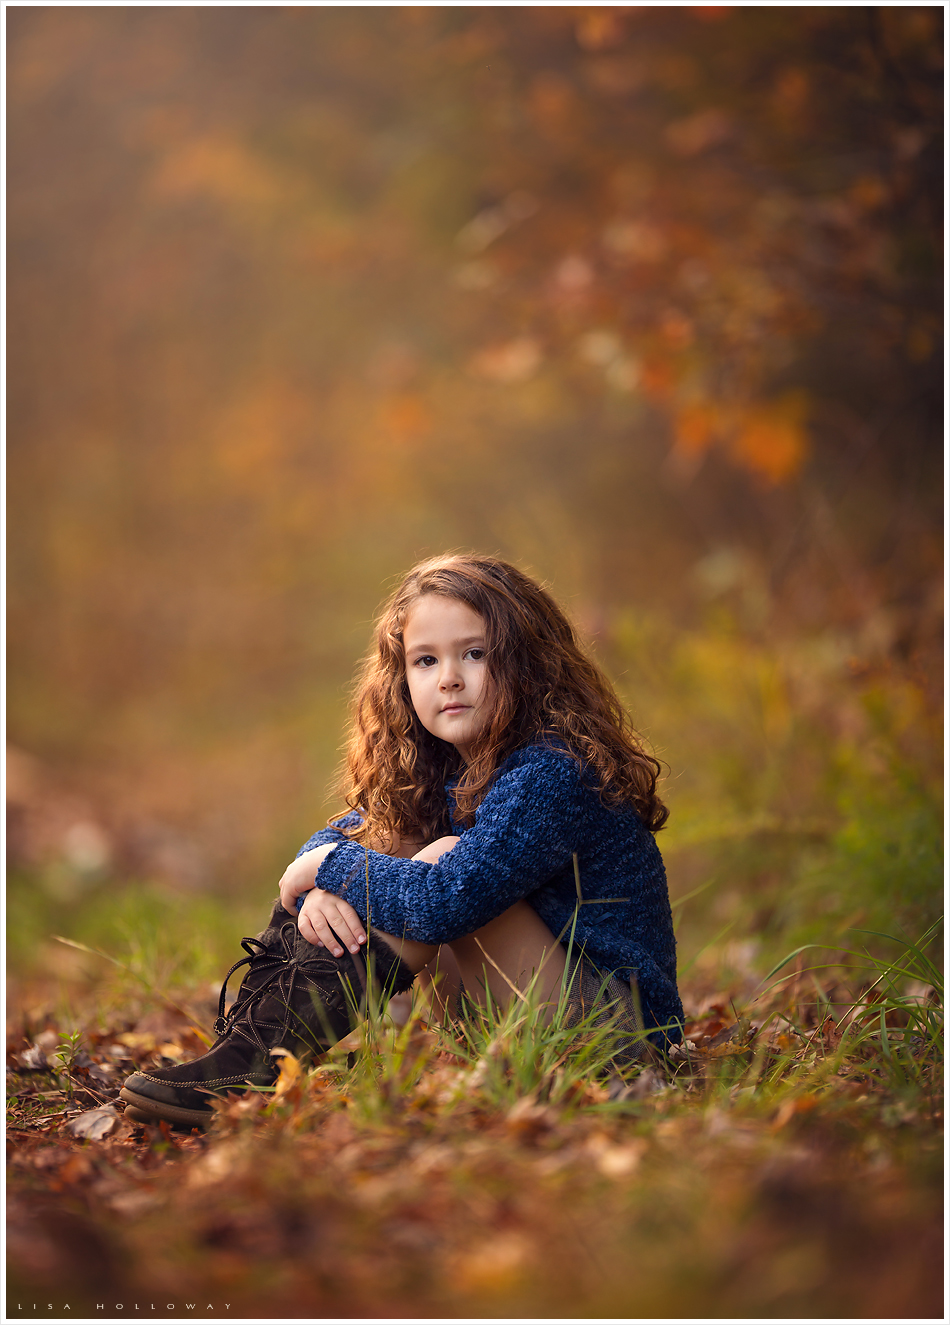 LJHolloway Photography is a Las Vegas Child Photographer.